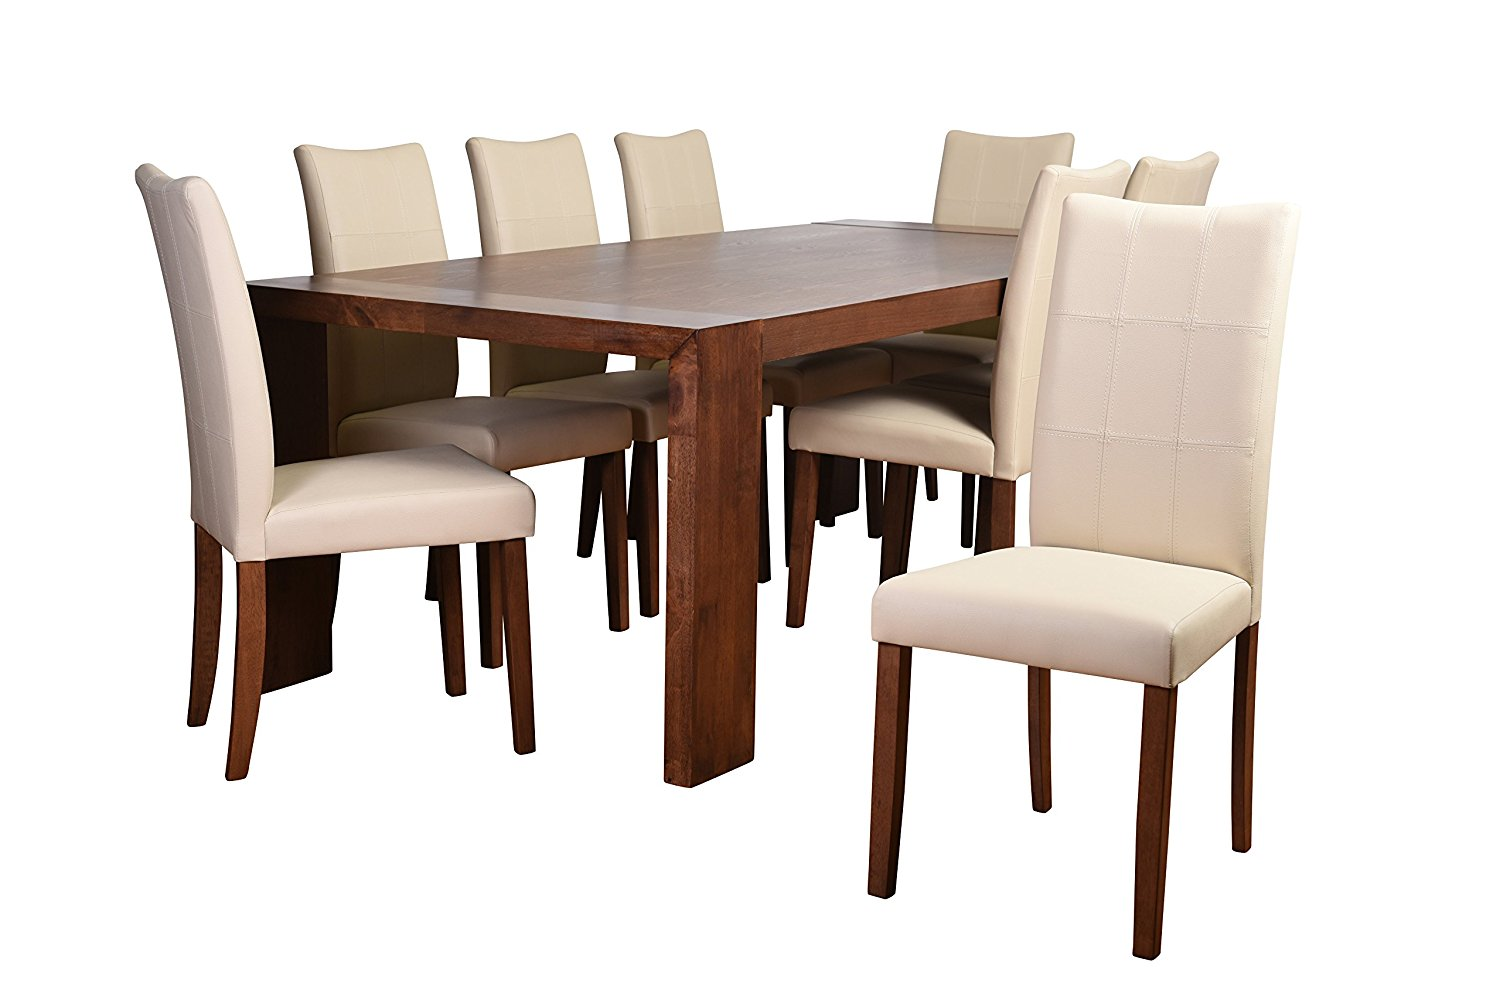 Midtown Concept Christine Deluxe Mid-Century 9Piece Living Room Dining Set, Cream Leather